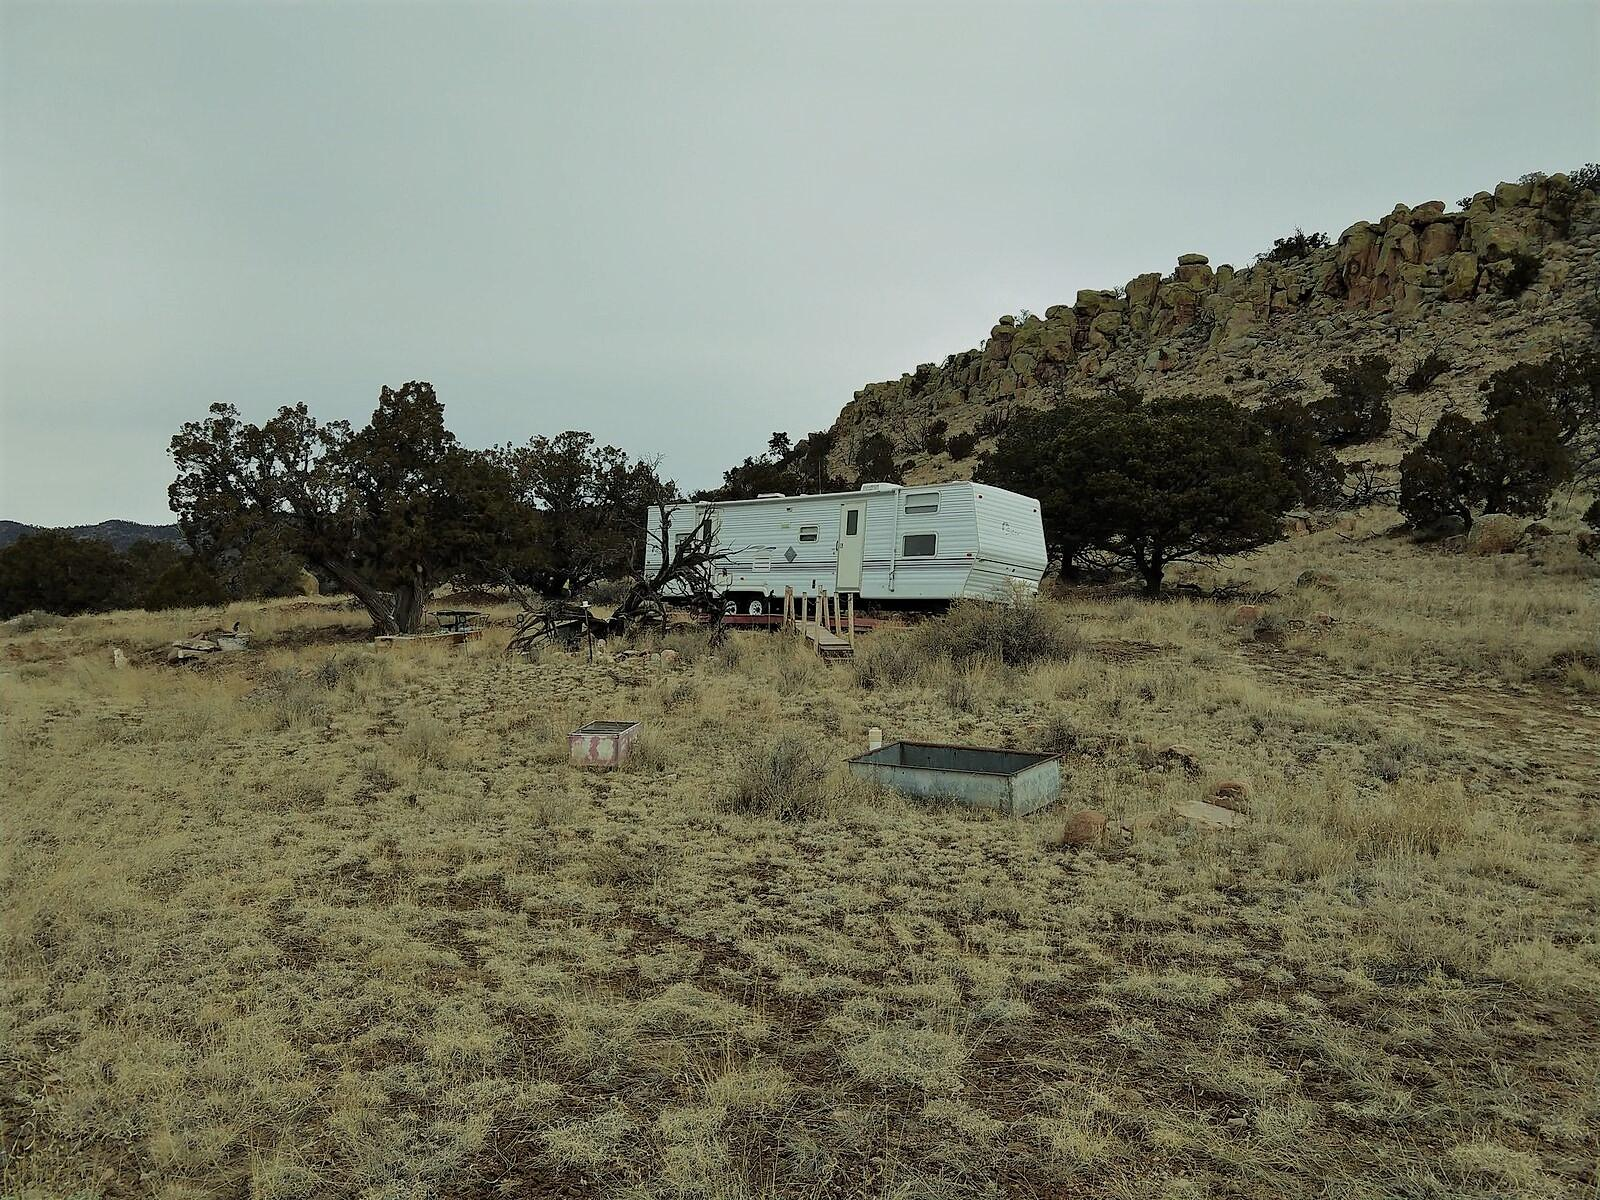 42 RAVEN Loop, Datil, NM 87821 - Datil, NM real estate listing